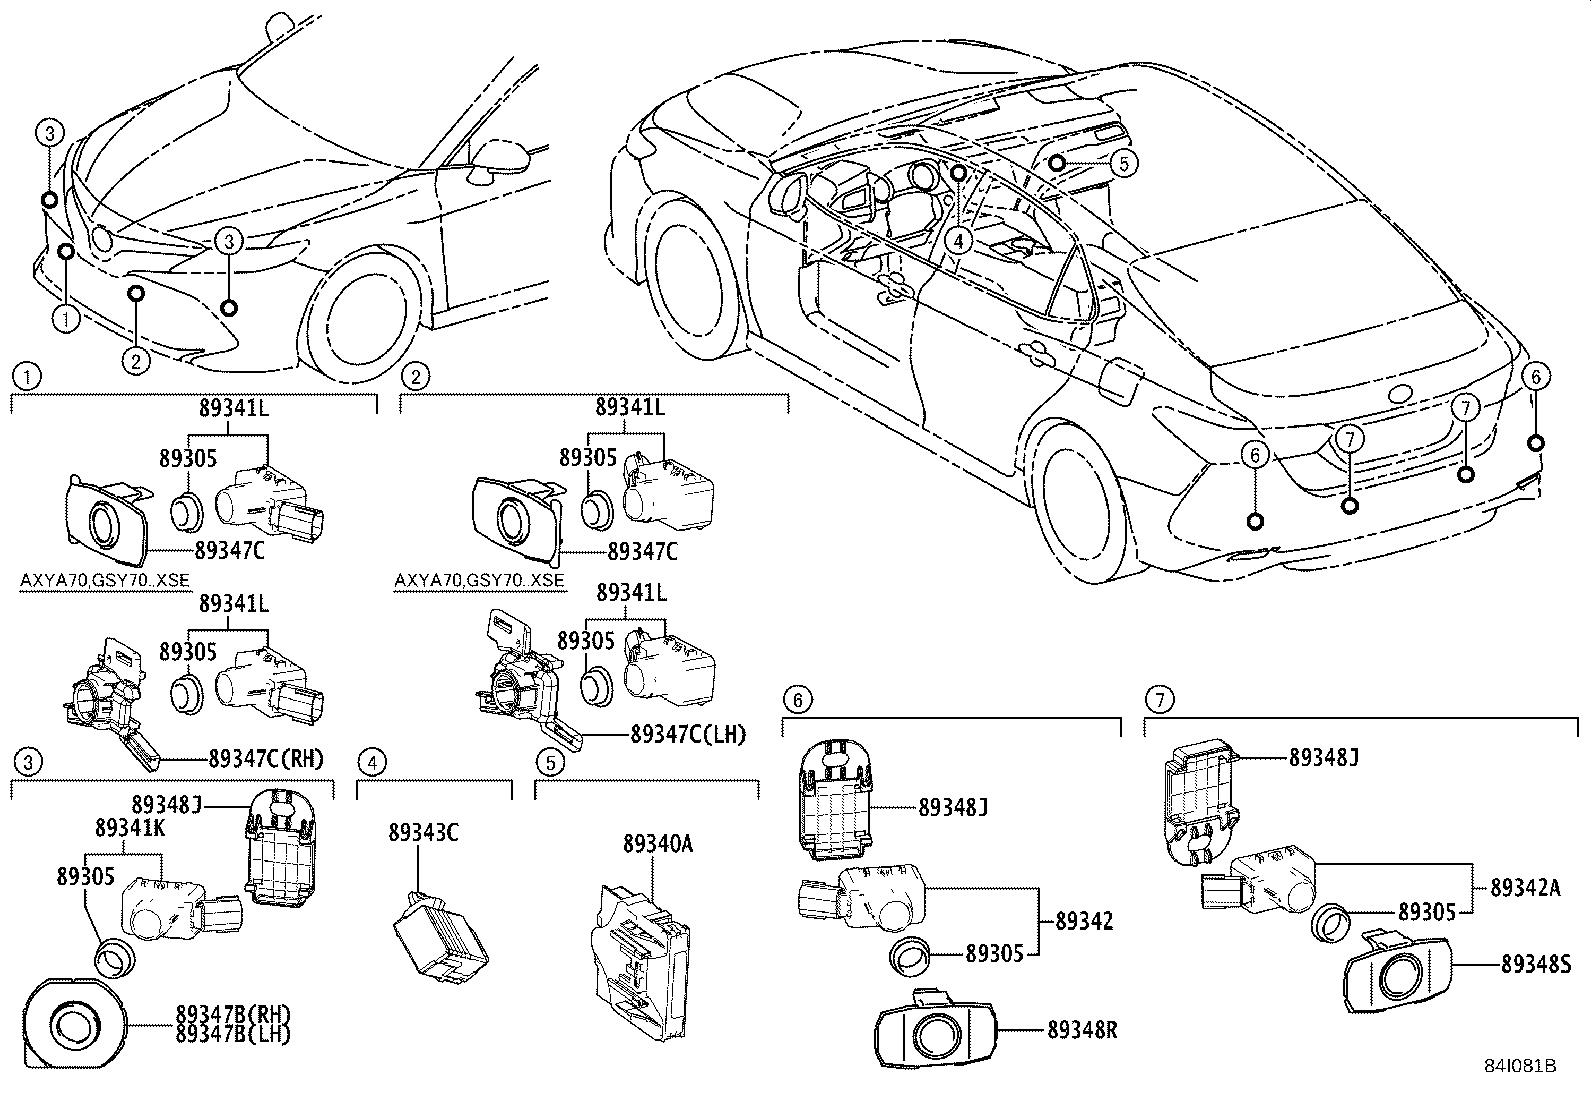 Toyota Camry Parking Aid Control Module Computer